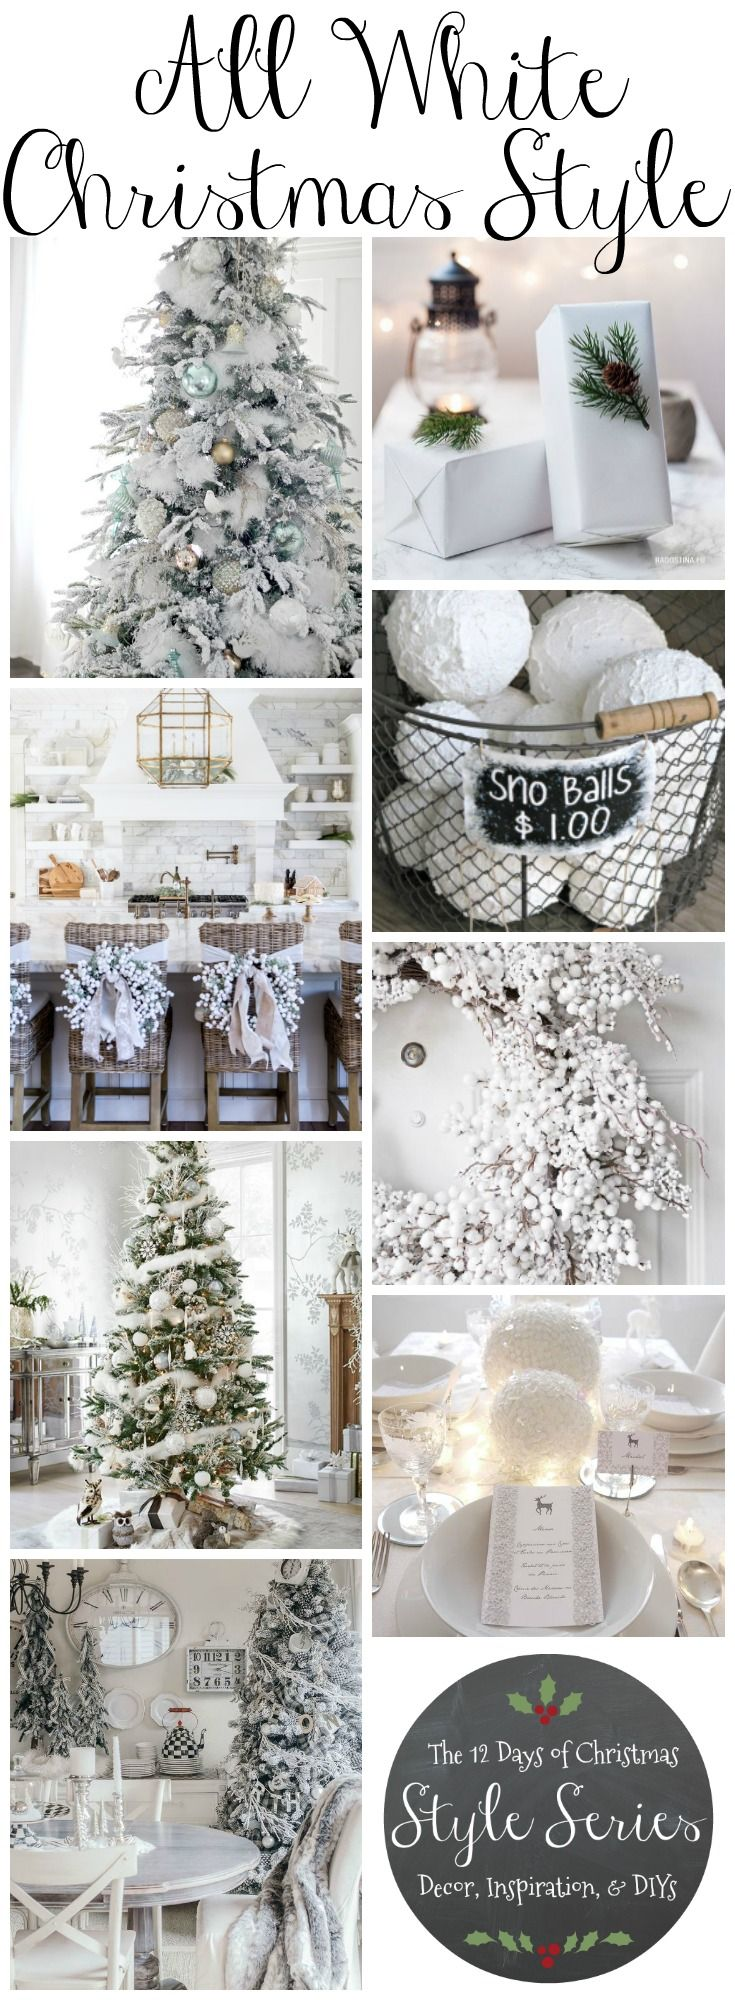 Top 25+ Best Holiday Decorating Ideas On Pinterest | Christmas Decor, Diy  Christmas Decorations And Xmas Decorations